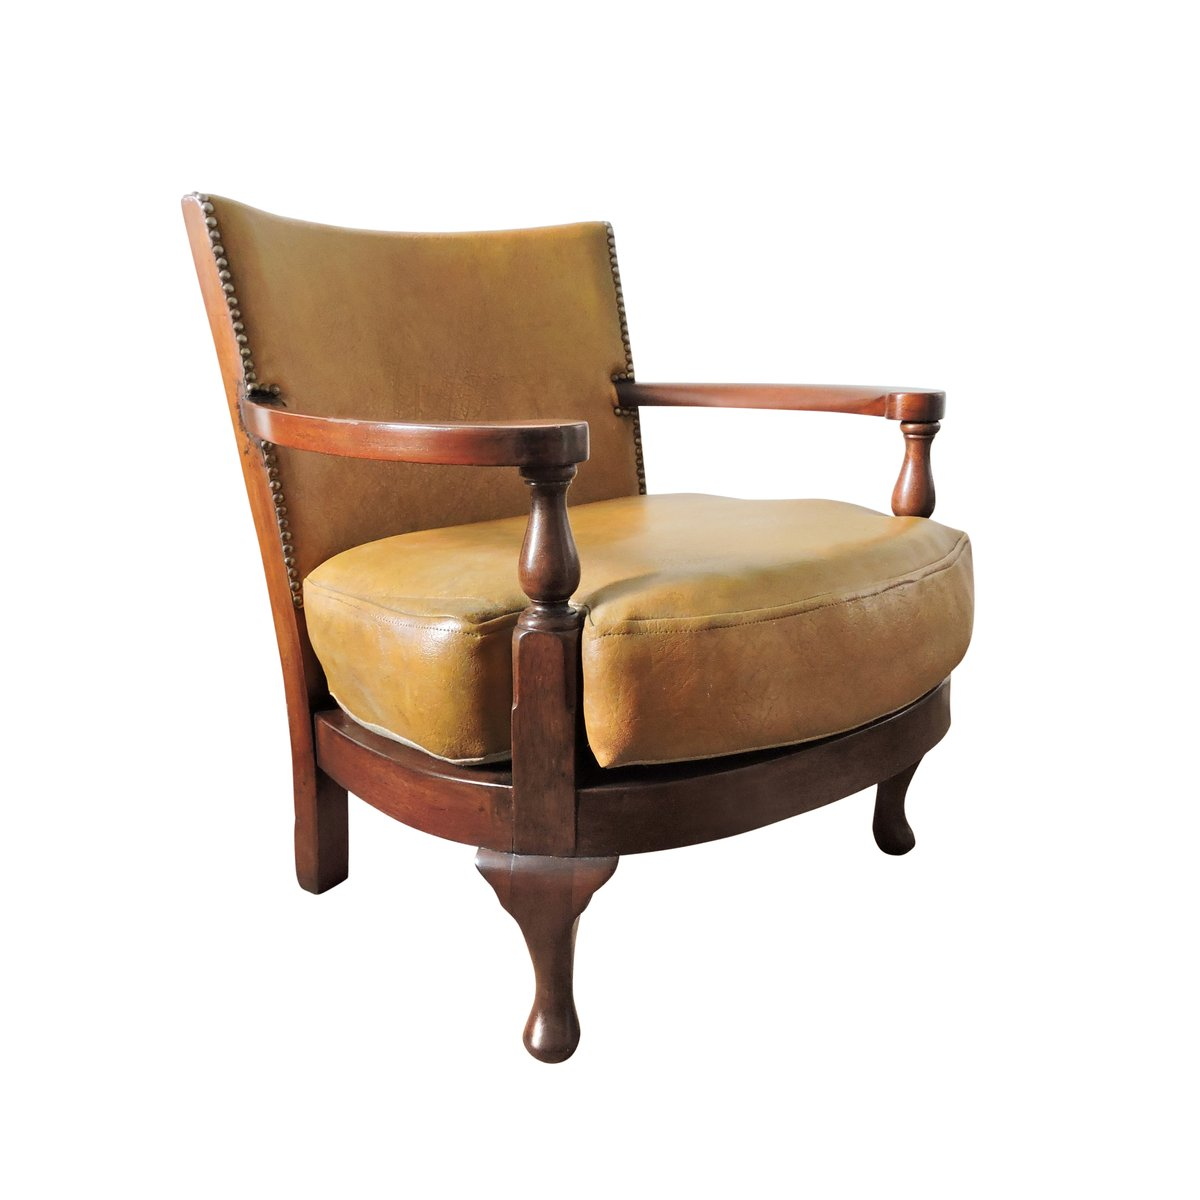 Leather And Wood Chair Vintage Mustard Yellow Leather And Wood Tub Chair